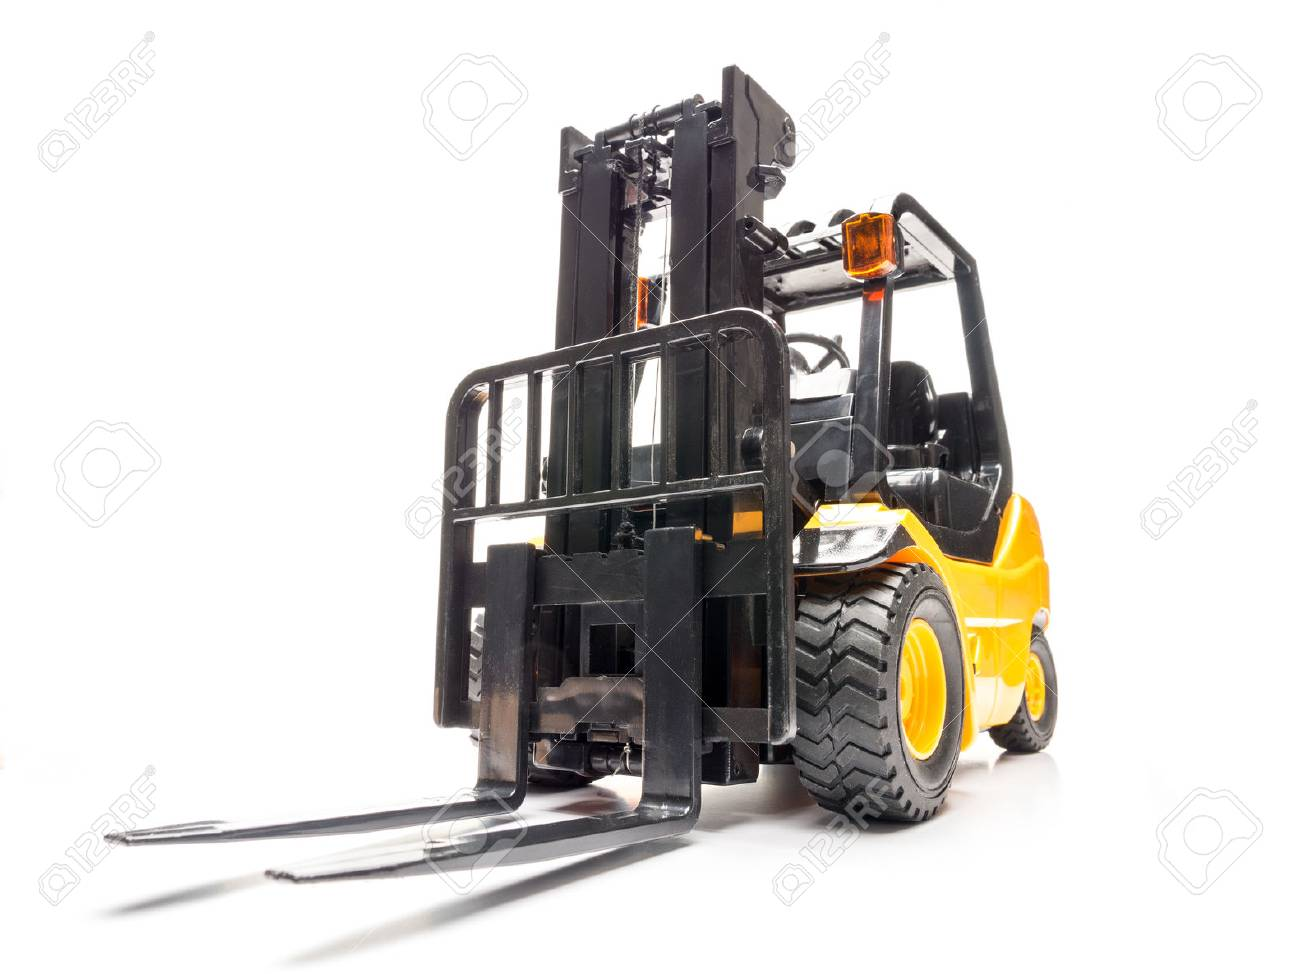 Yellow forklift truck shot on white background Stock Photo - 46182800